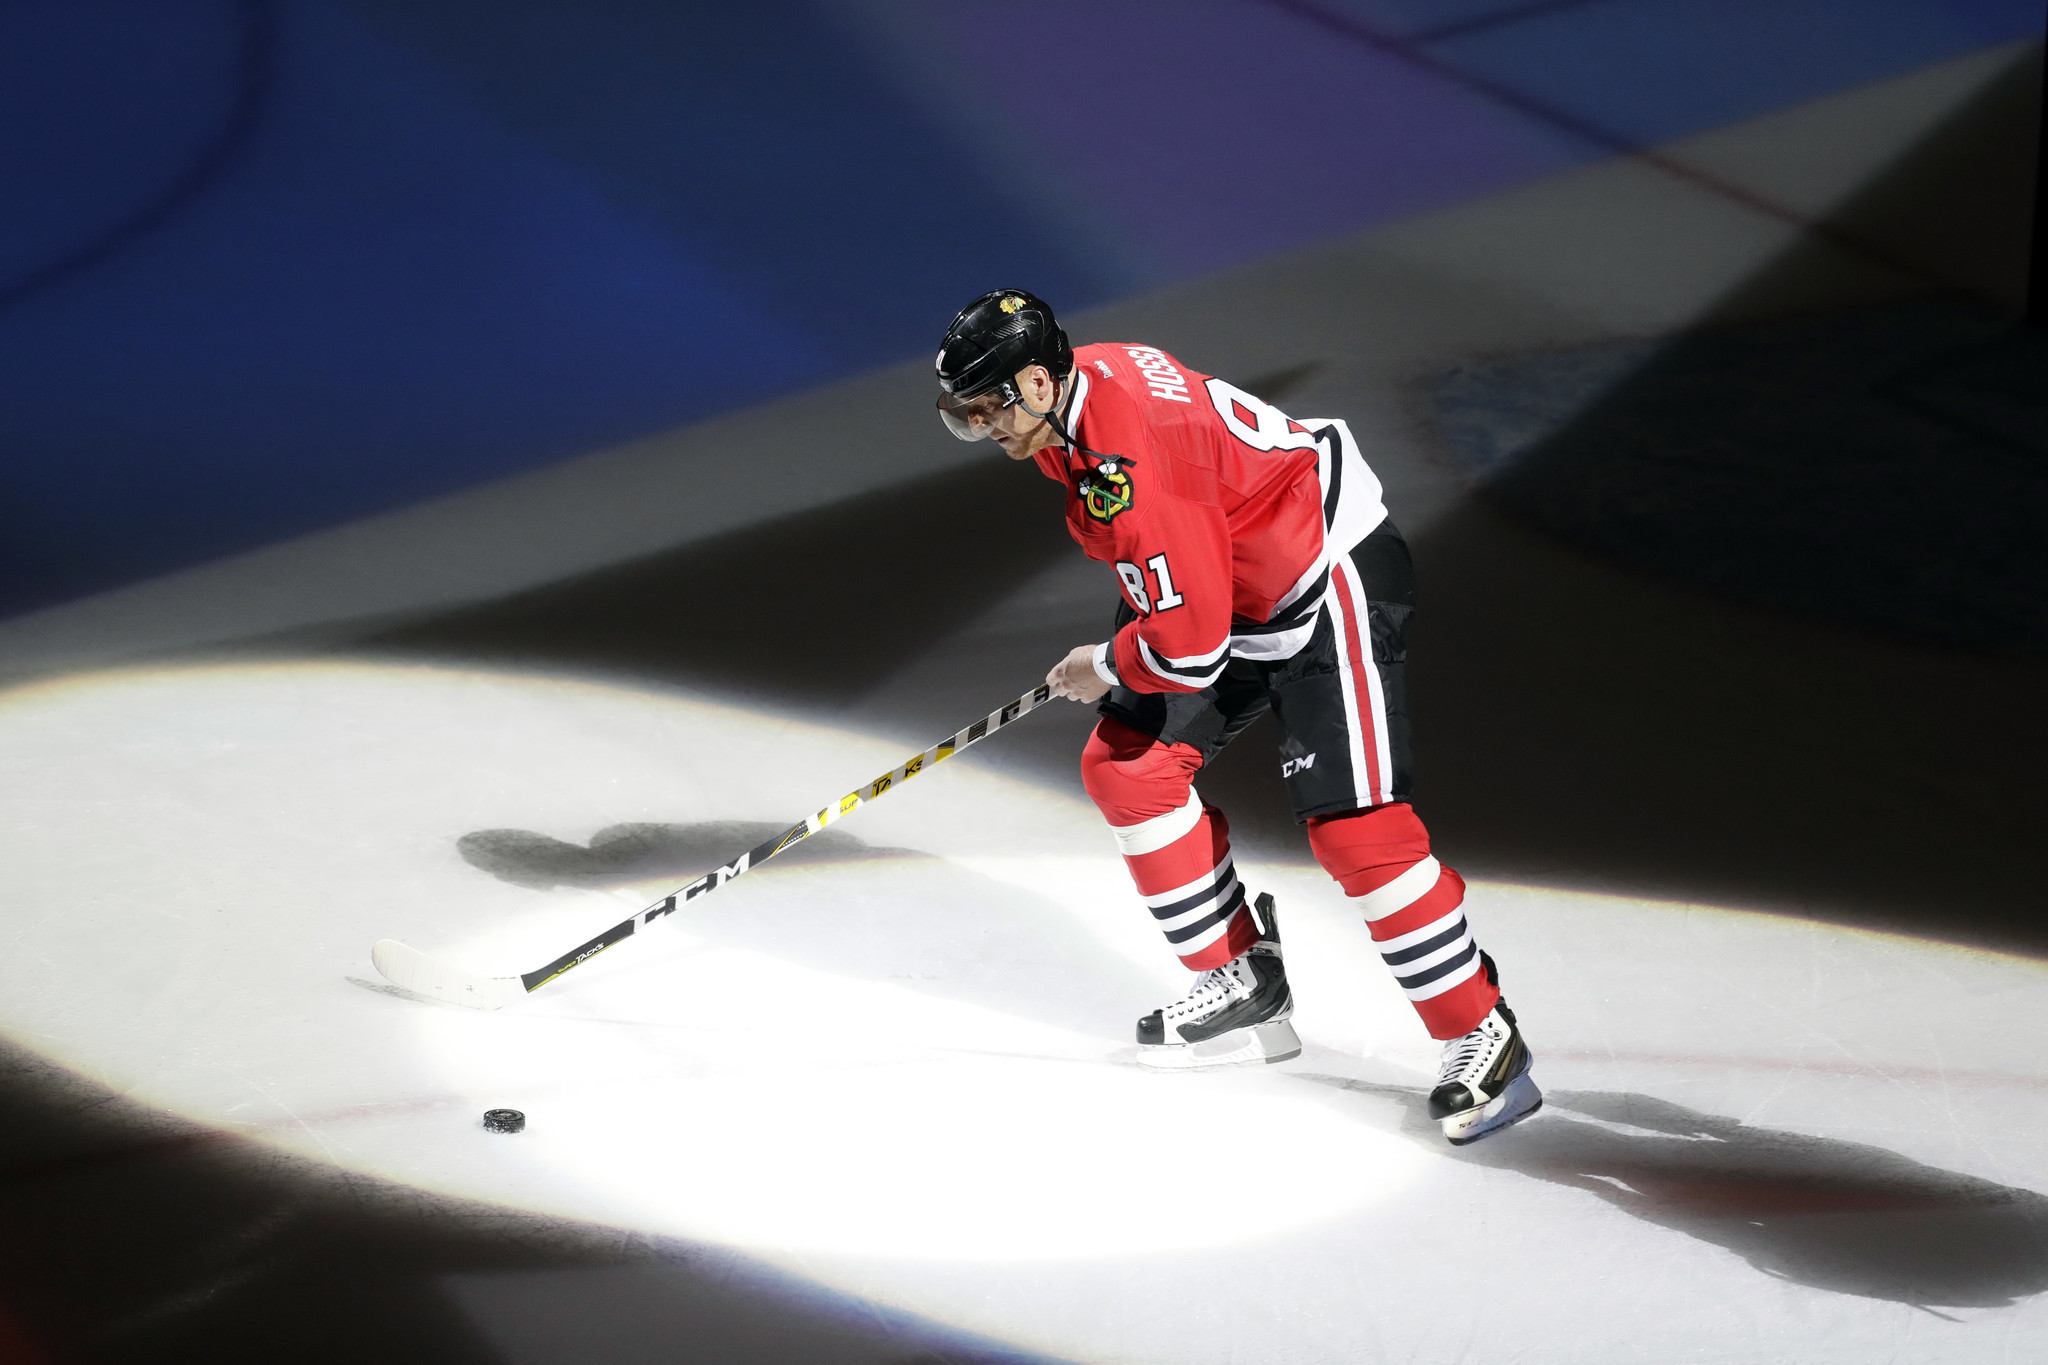 fa659130150 Marian Hossa and Blackhawks — how they came together